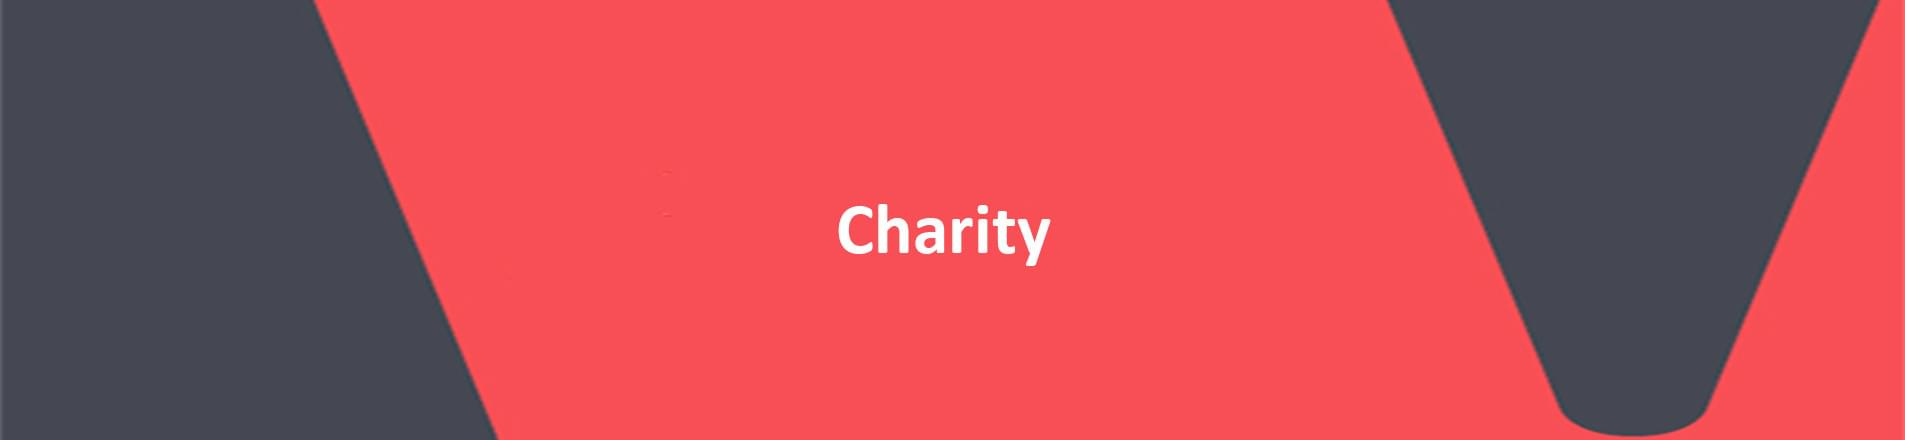 The word Charity on red Vercida branded background